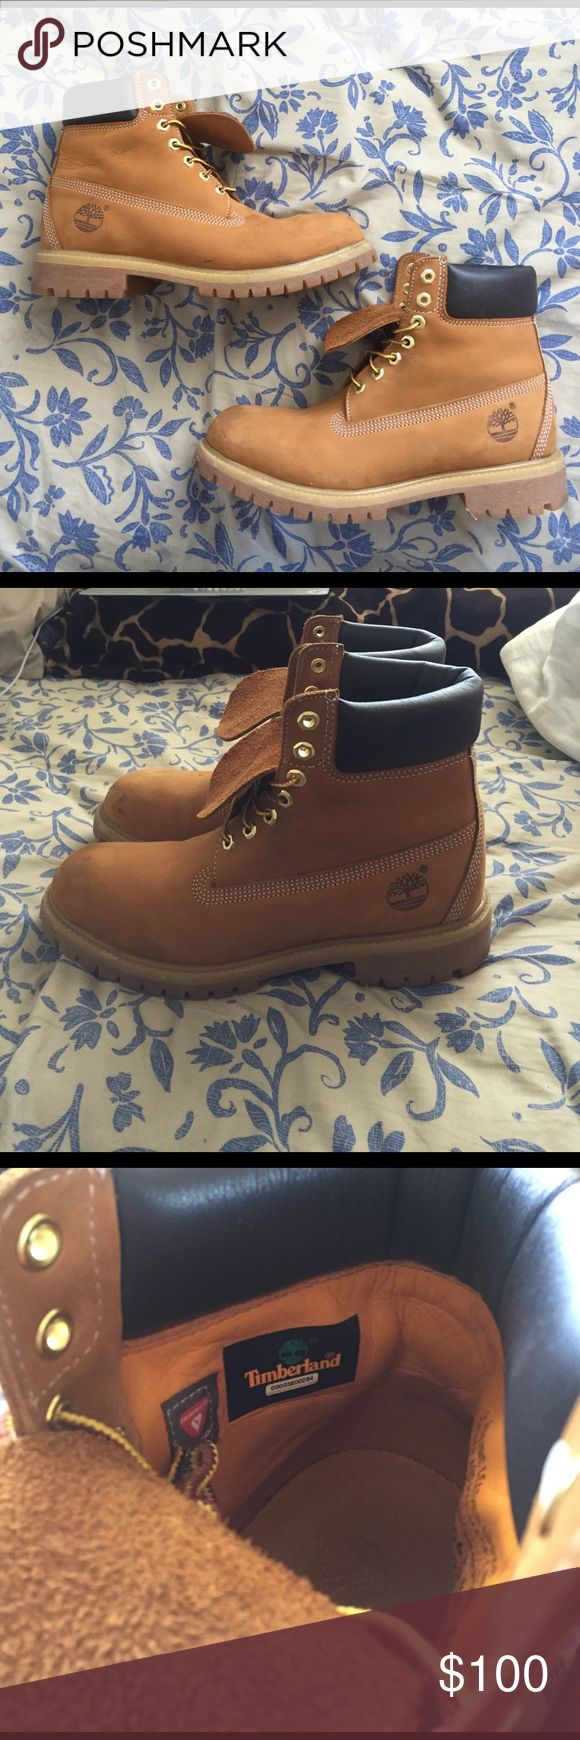 """Timberland Boots Timberland 6"""" Premium Waterproof Boots Rust Nubuck Size 9 M (medium width) . A little scuffed up but can easily be cleaned with suede shoe cleaner. Only worn a couple times. Timberland Shoes Boots"""